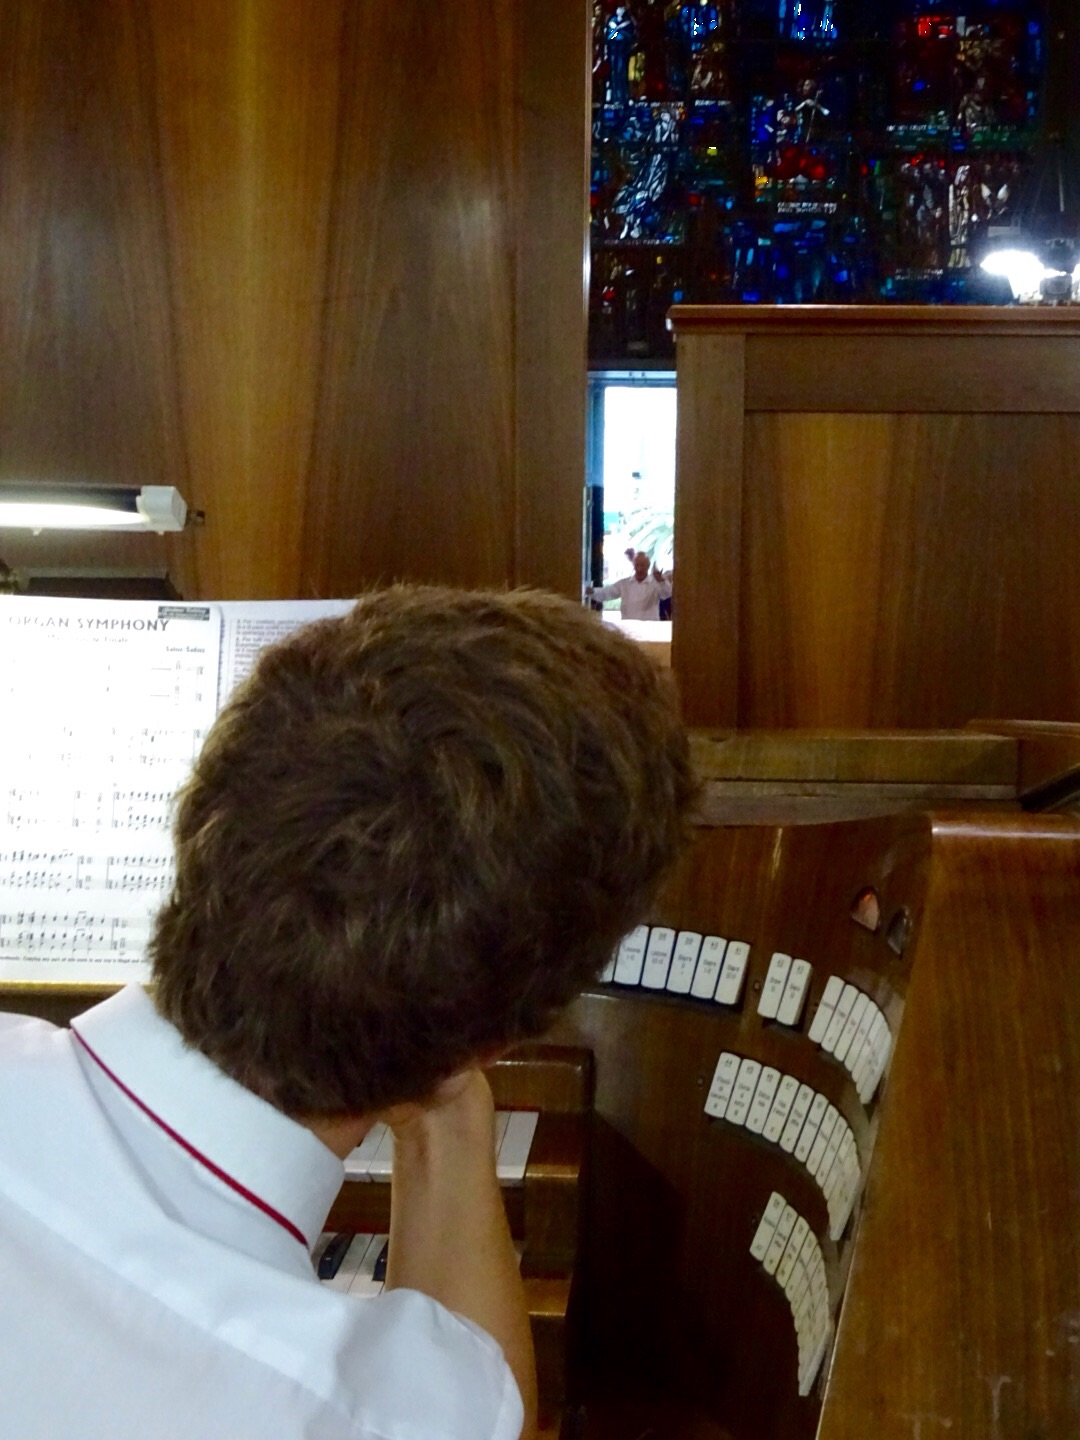 Difficult to see the conductor from the organ.